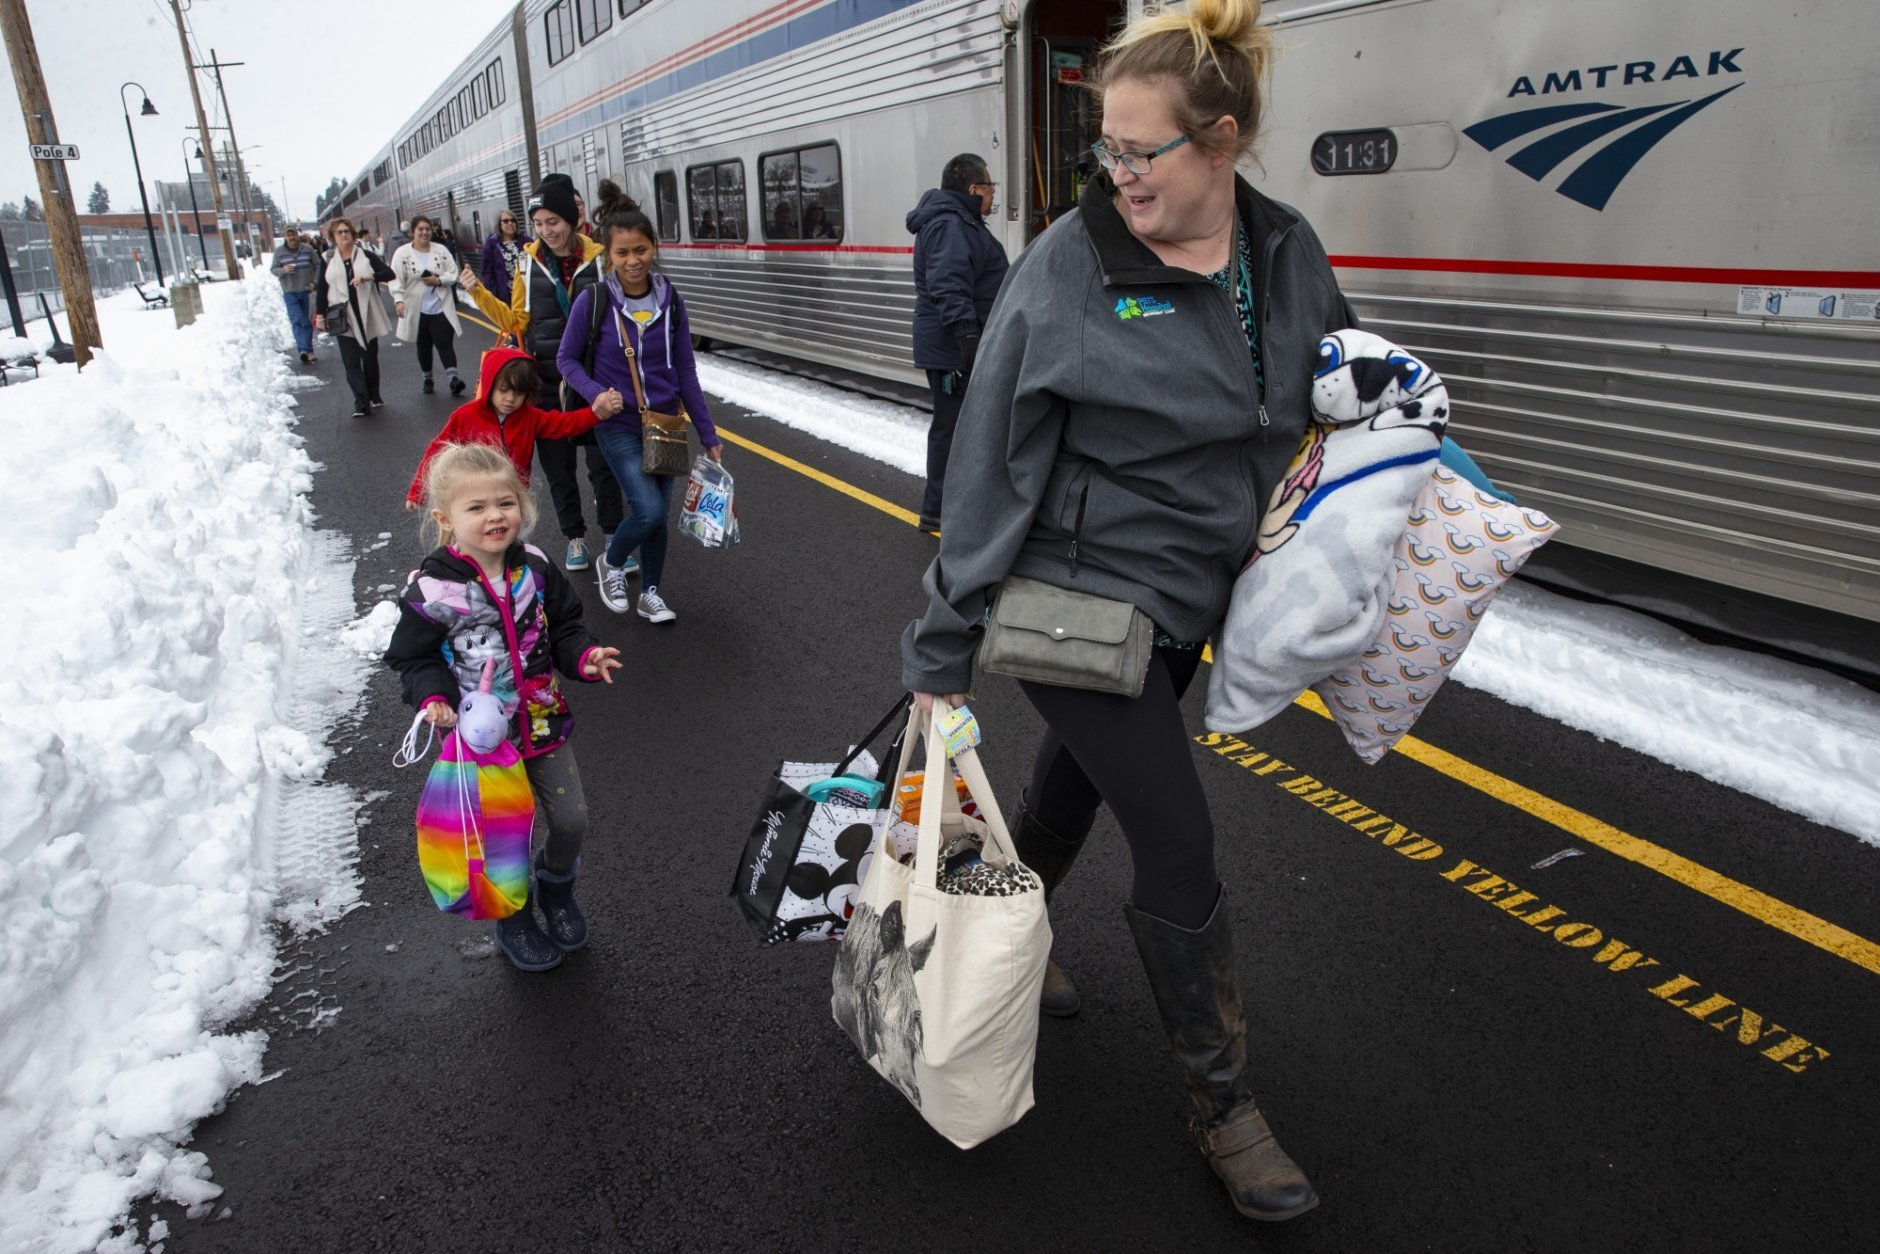 Jordyn Hooper, right, and her four-year-old daughter Quinn Hooper, left, join other passengers as they disembark from an Amtrak train in Eugene, Ore, Tuesday, Feb. 26, 2019 after being stranded overnight in the mountains east of town. (AP Photo/Chris Pietsch)